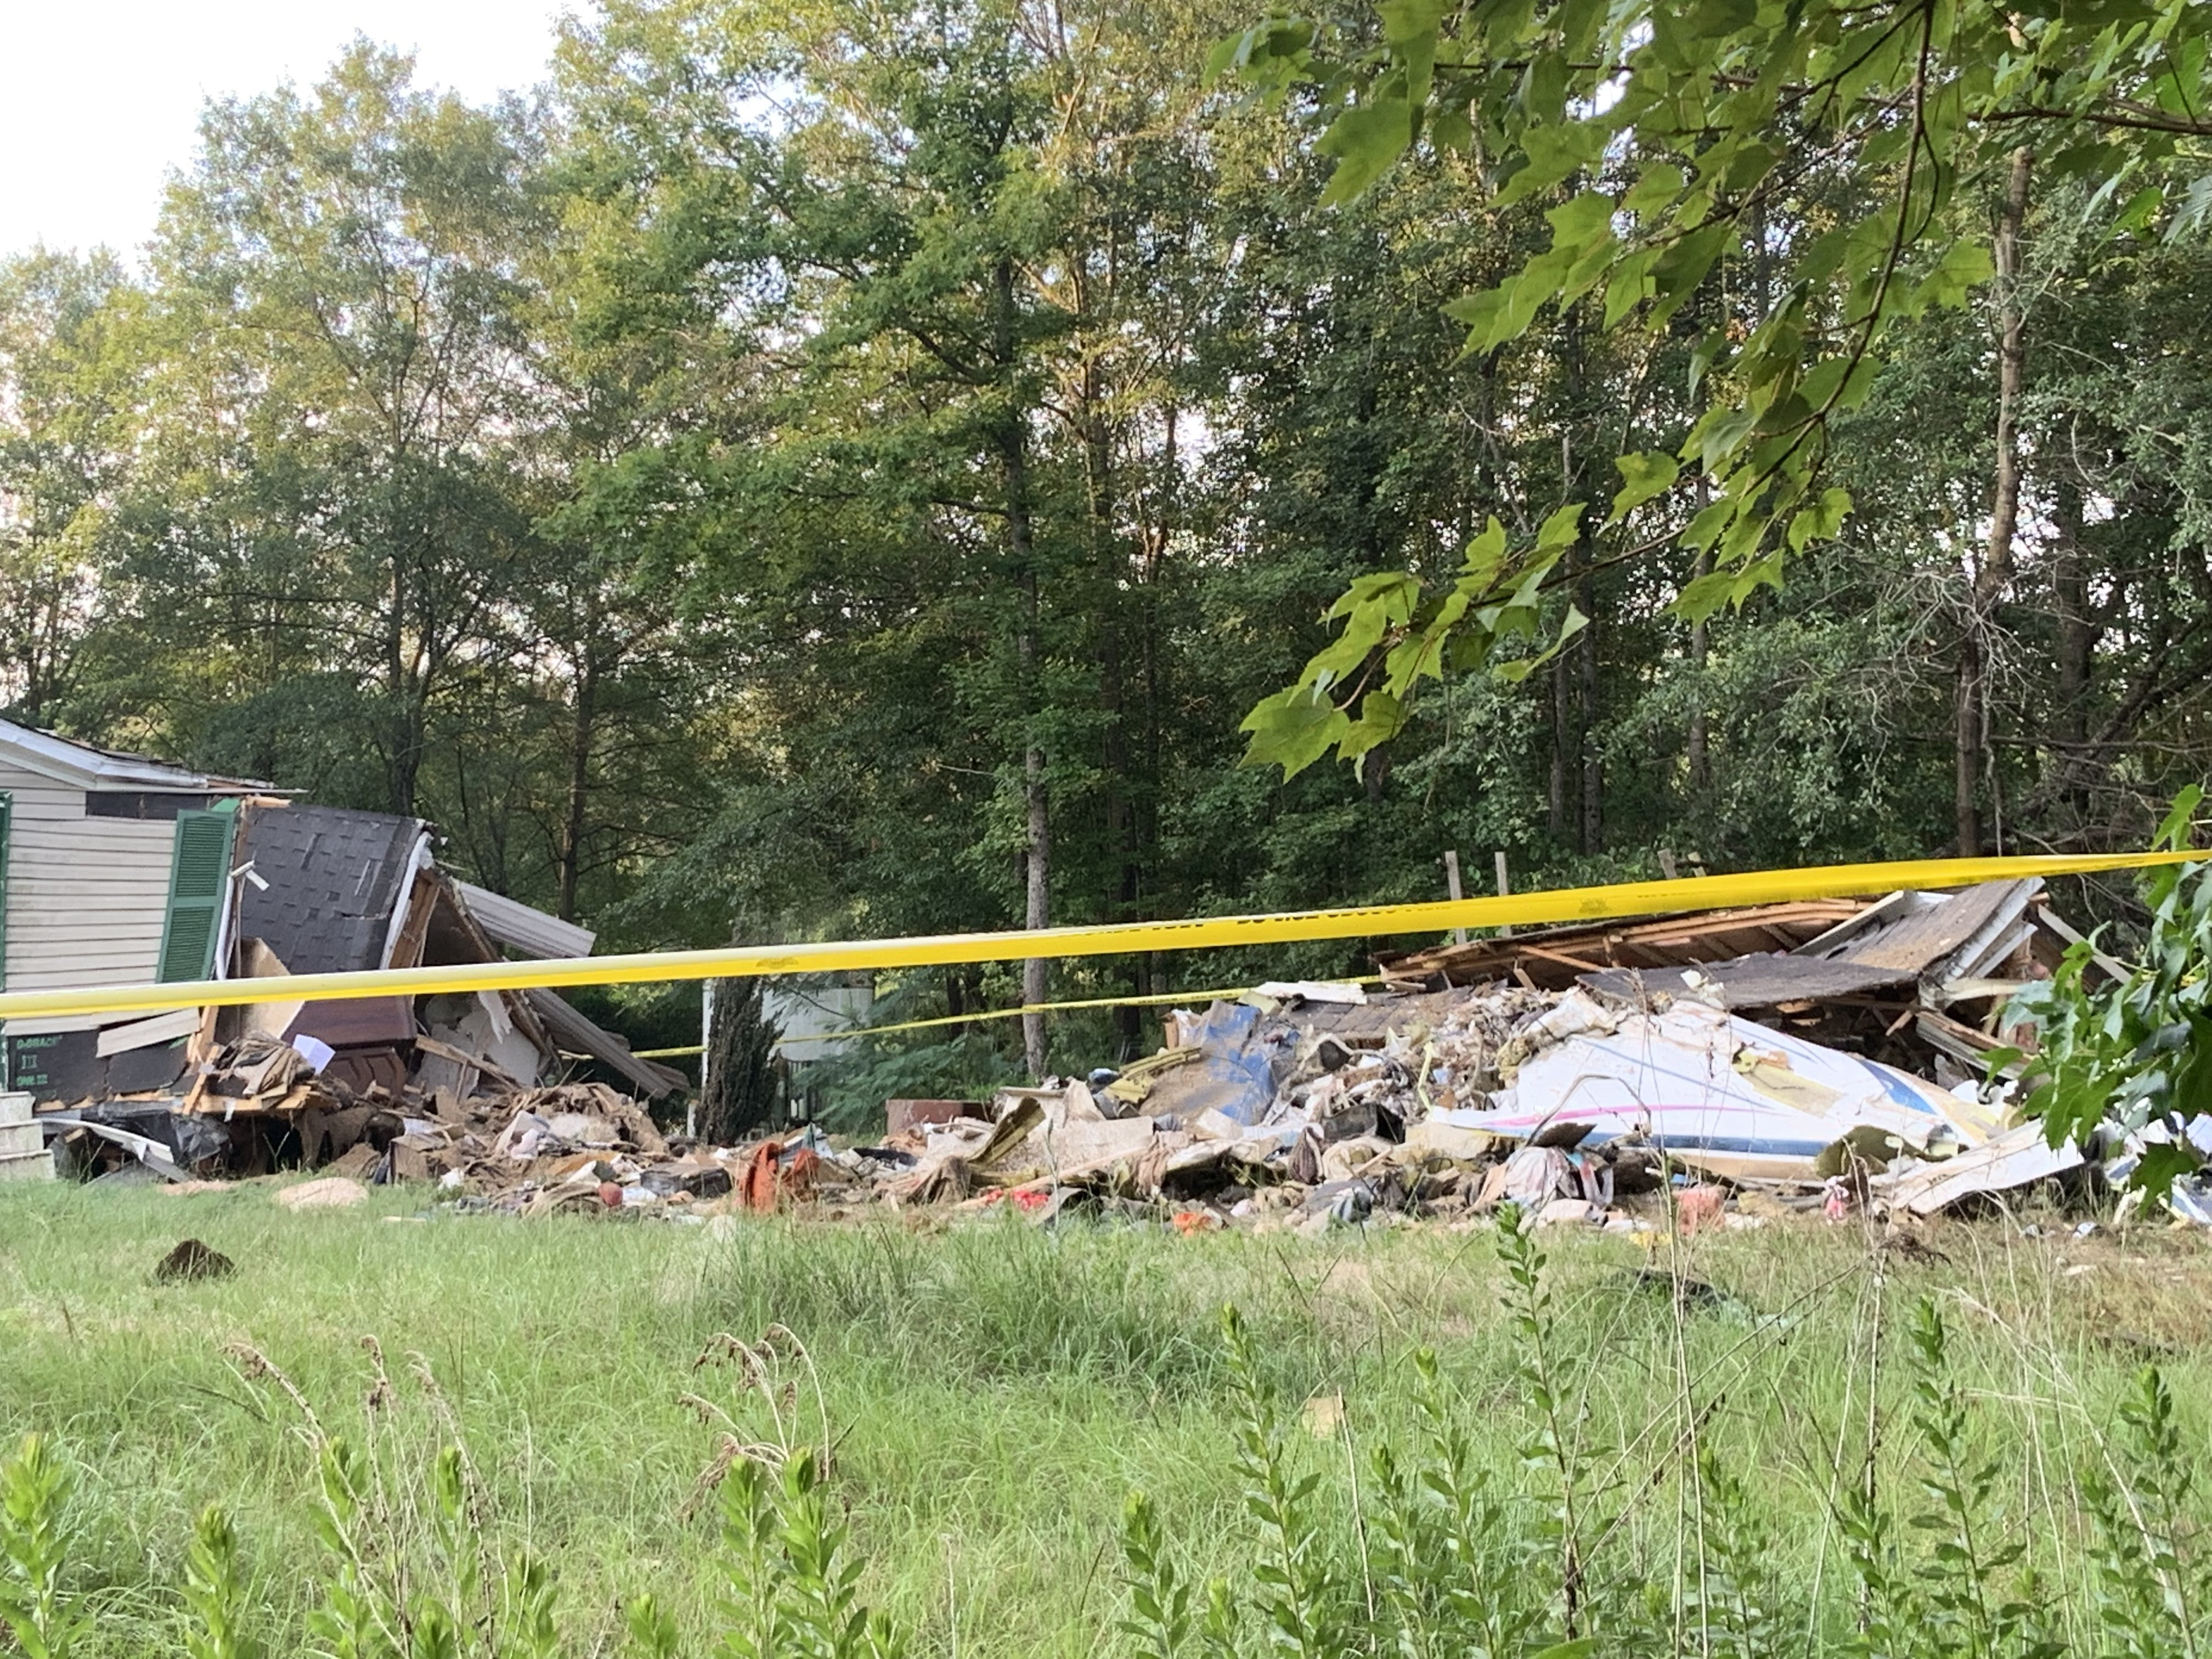 2 dead, 1 seriously injured after plane crashes into Cumberland